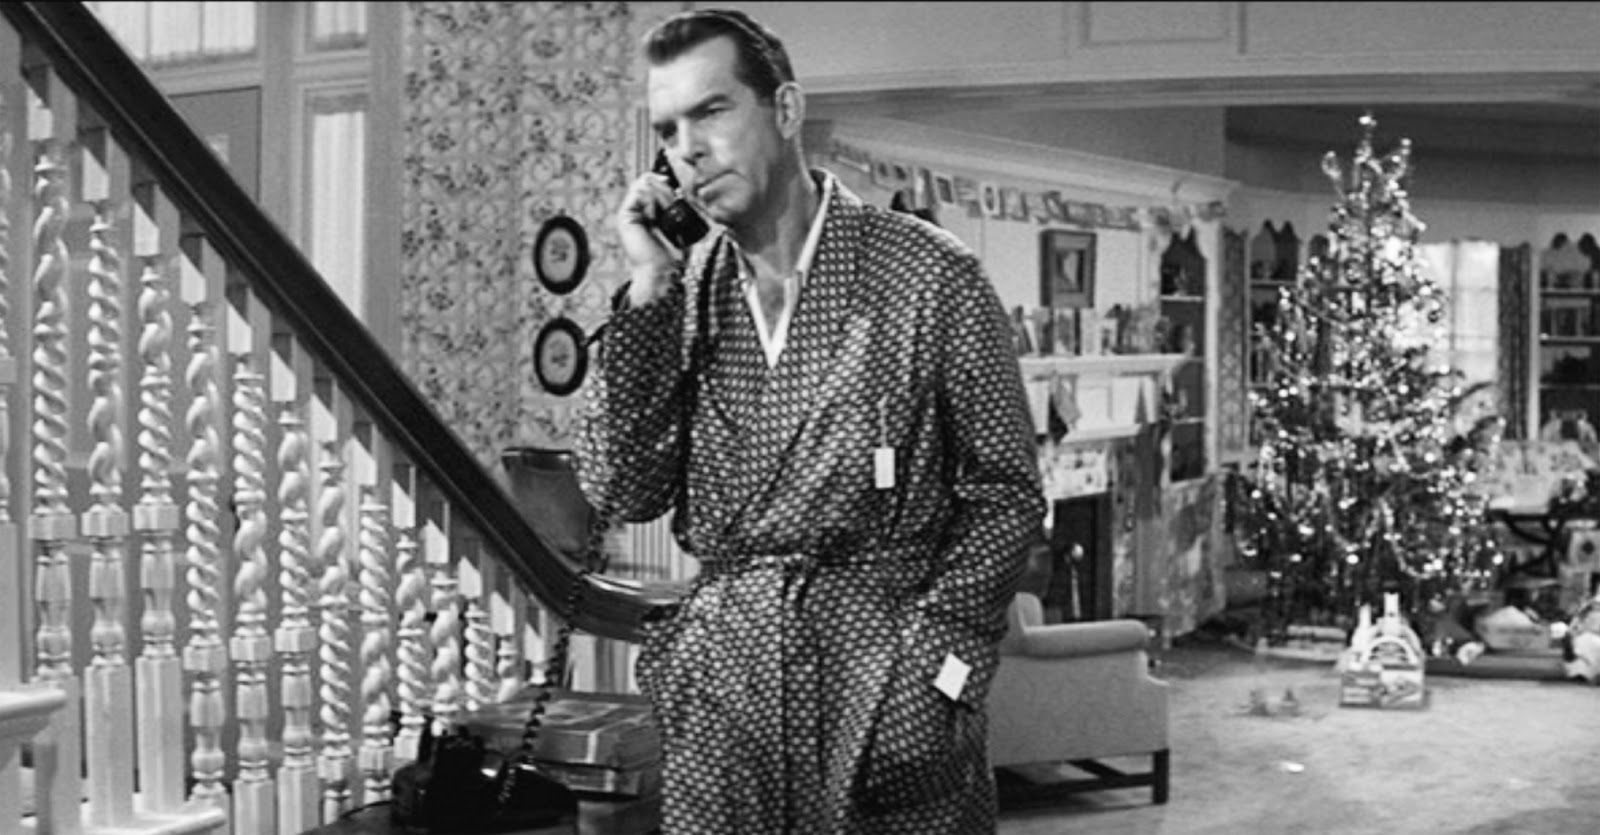 fred macmurray barbara stanwyckfred macmurray quotes, fred macmurray bio, fred macmurray actor, fred macmurray wikipedia, fred macmurray net worth, fred macmurray movies, fred macmurray imdb, fred macmurray wealth, fred macmurray movies list, fred macmurray my three sons, fred macmurray daughter, fred macmurray barbara stanwyck, fred macmurray wine, fred macmurray grave, fred macmurray disney movies, fred macmurray wife, fred macmurray ranch, fred macmurray film crossword, fred macmurray movies youtube, fred macmurray gay